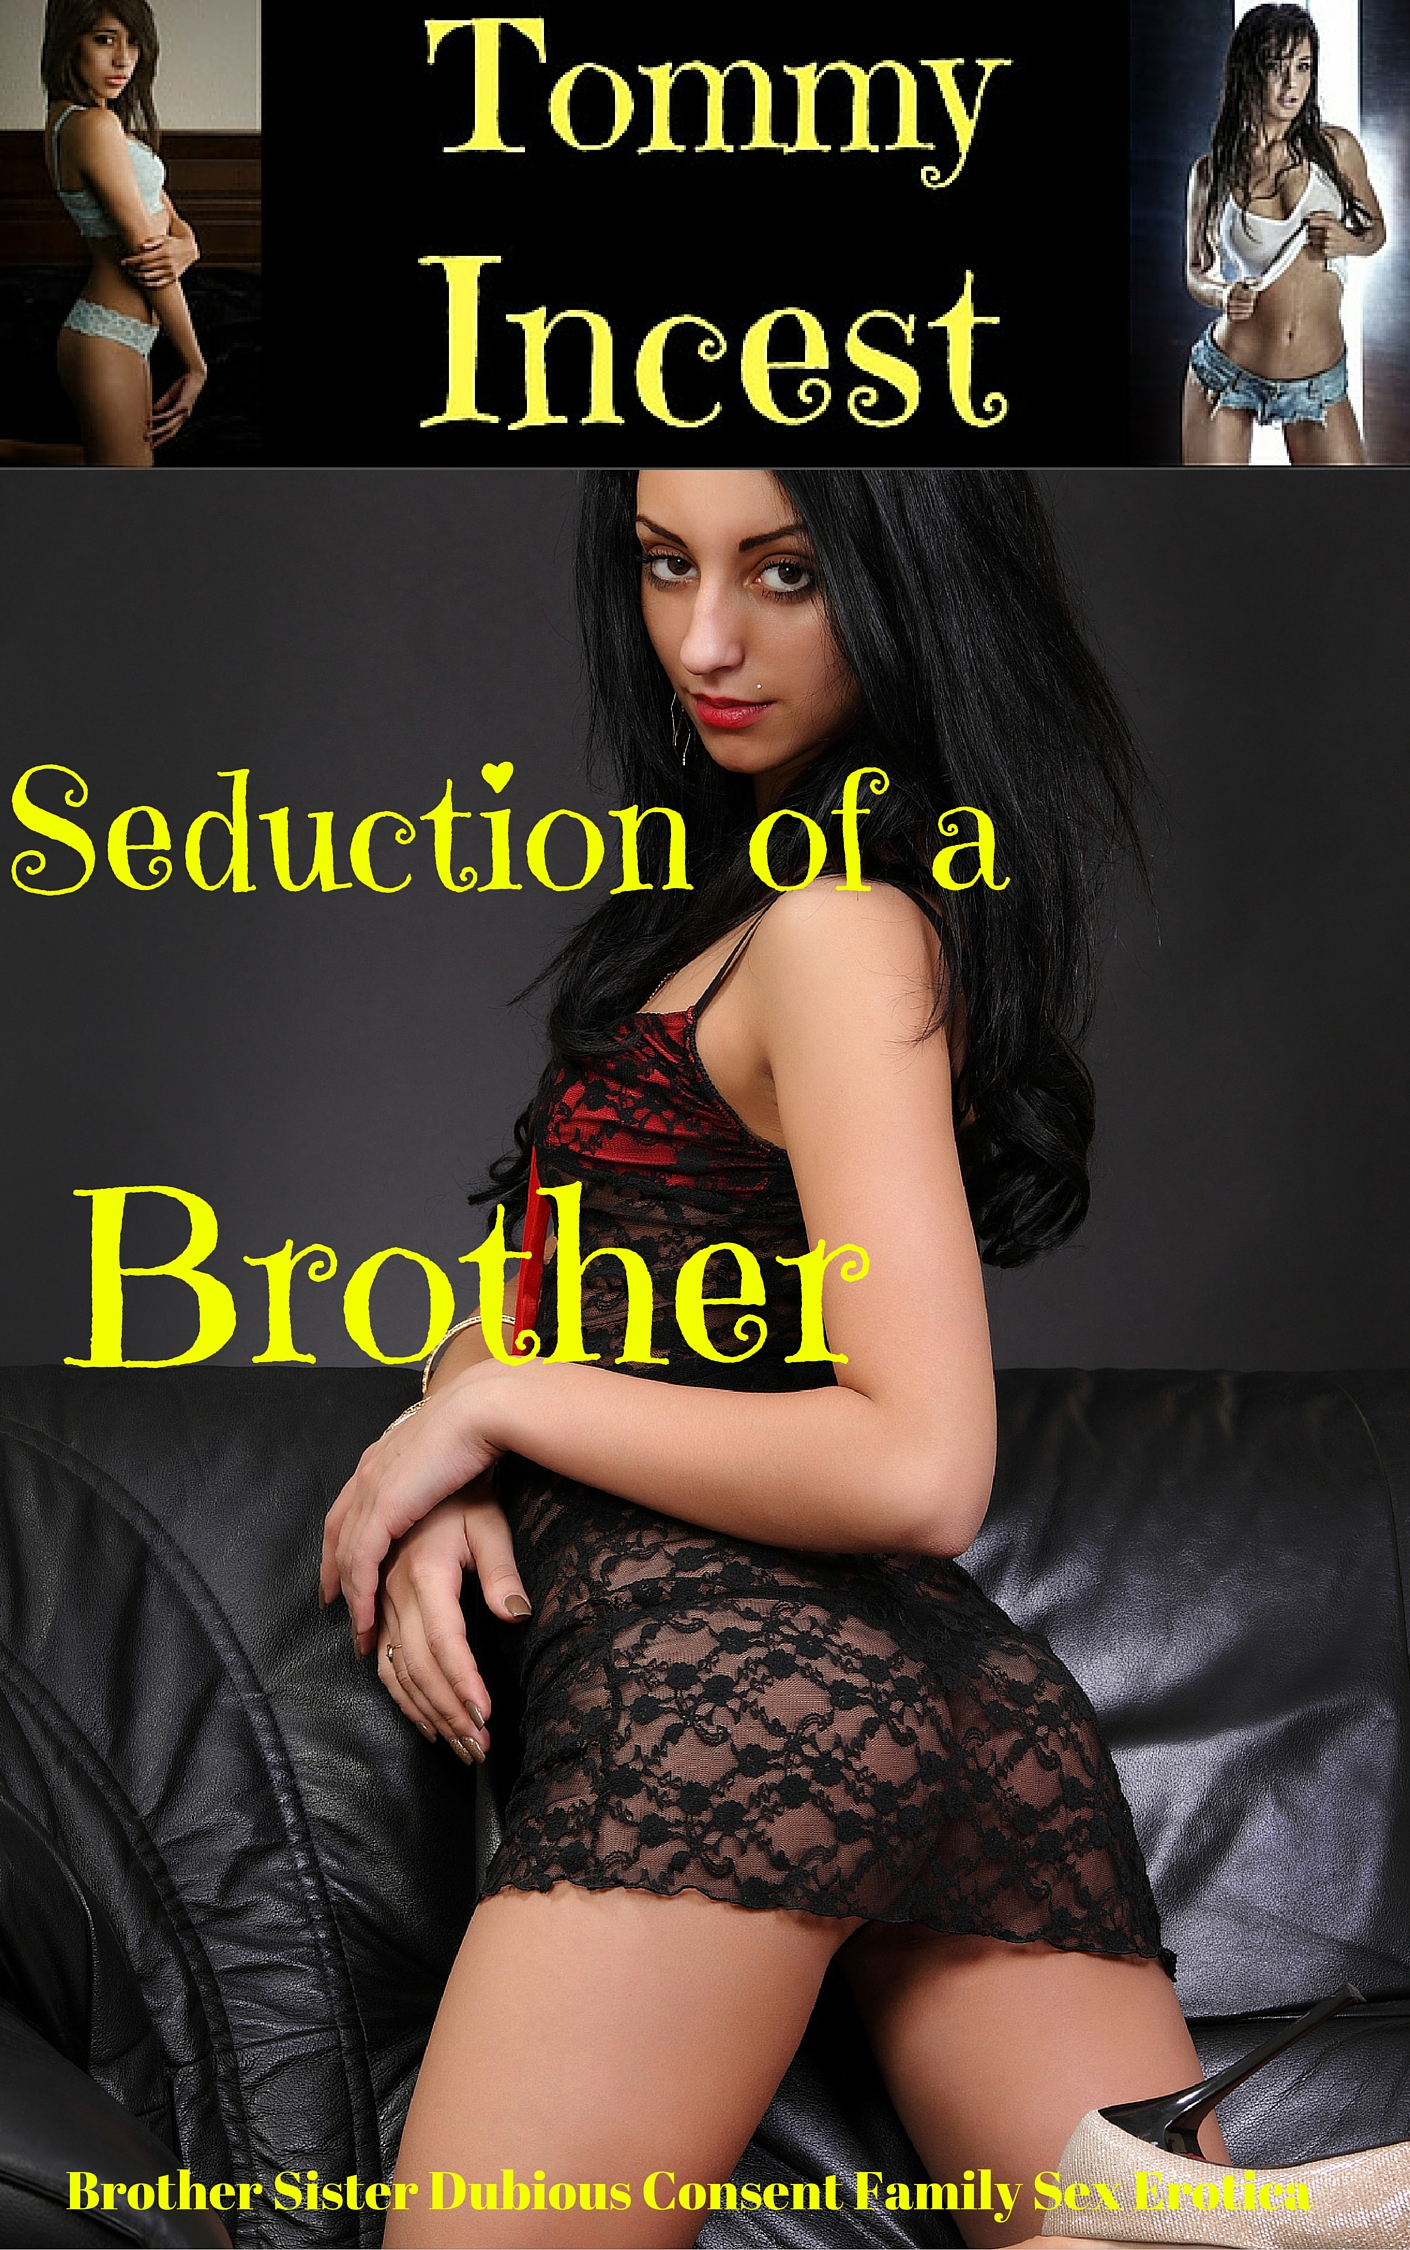 smashwords – seduction of a brother: brother sister dubious